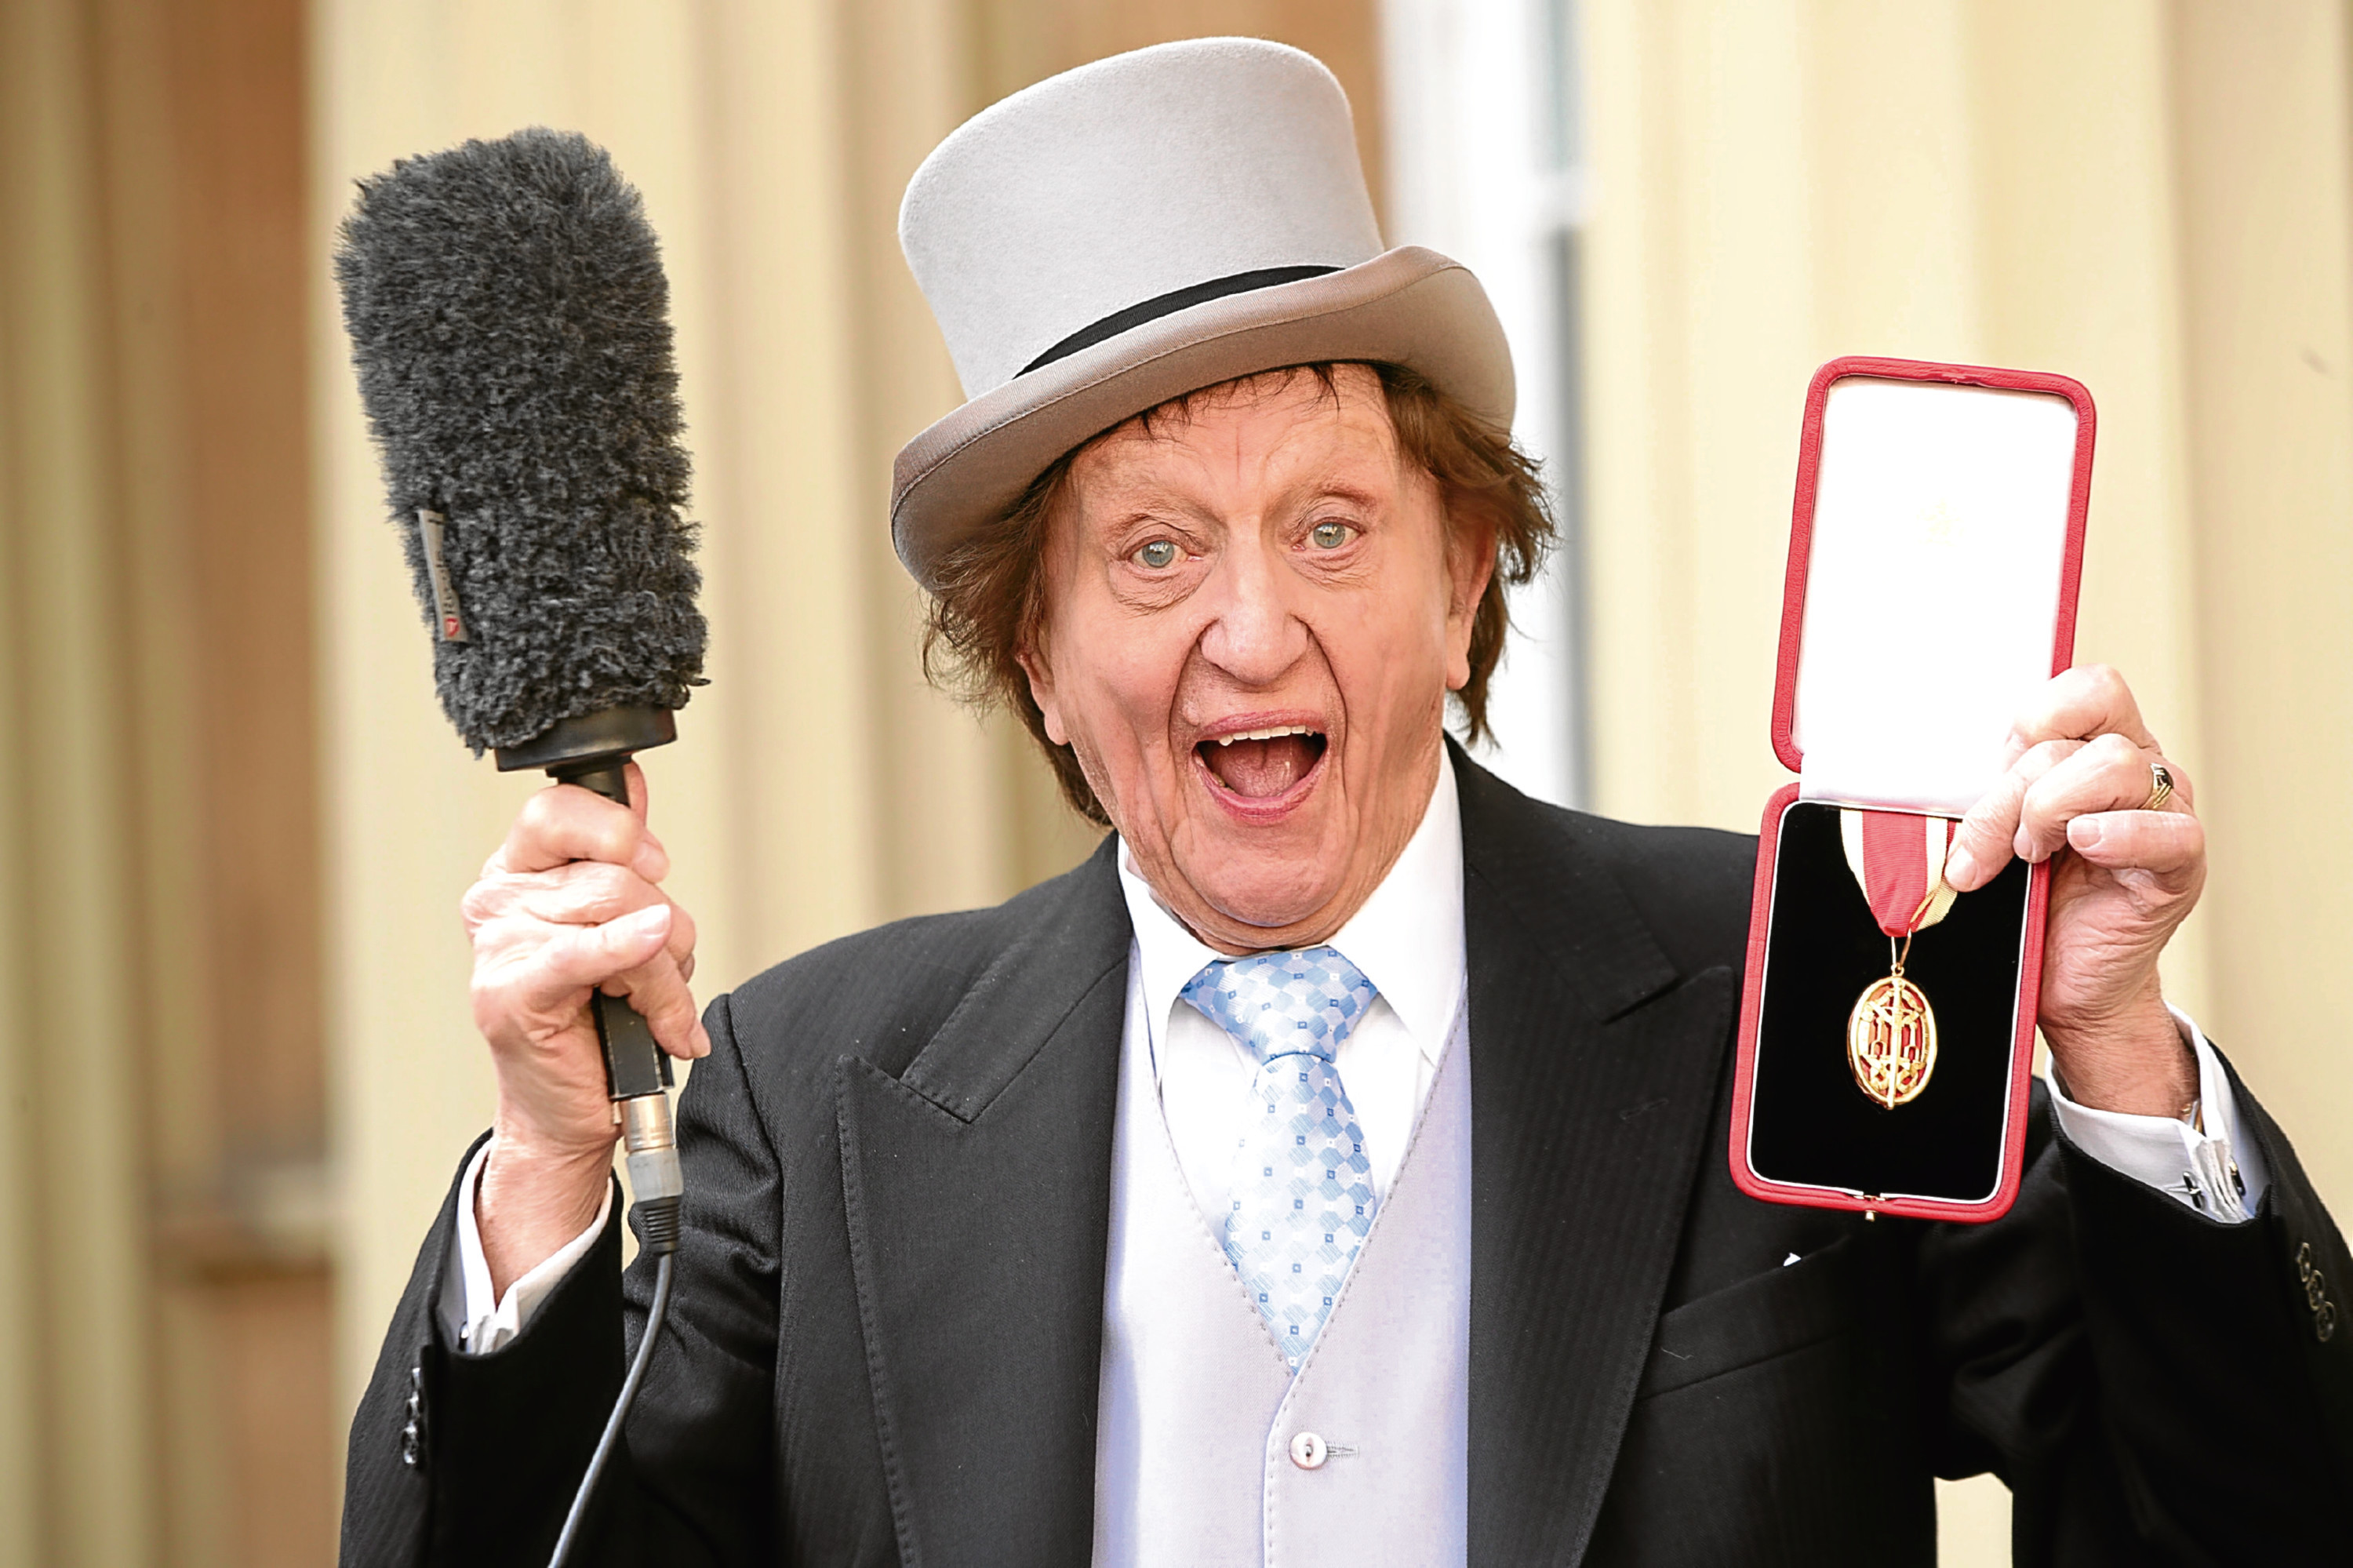 Ken Dodd was thrilled to receive his knighthood earlier this year (Yui Mok / PA)